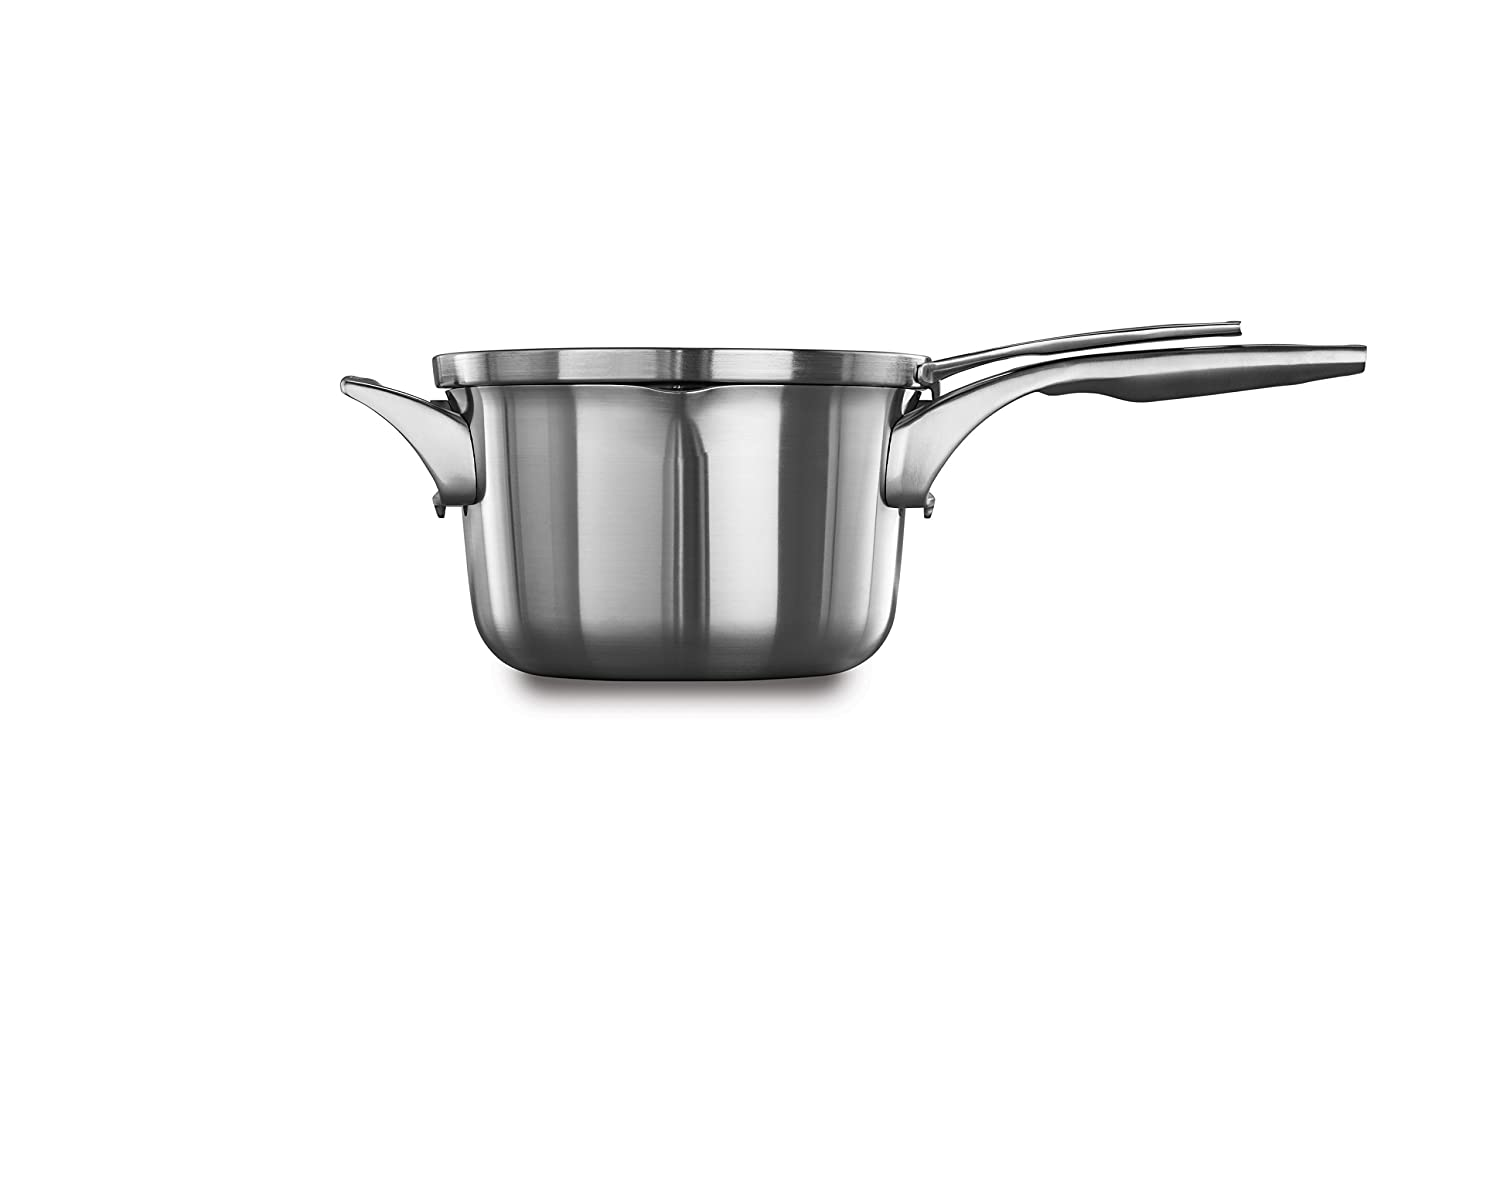 Calphalon Premier Space Saving Stainless Steel 12qt Stock Pot with Cover 2010657